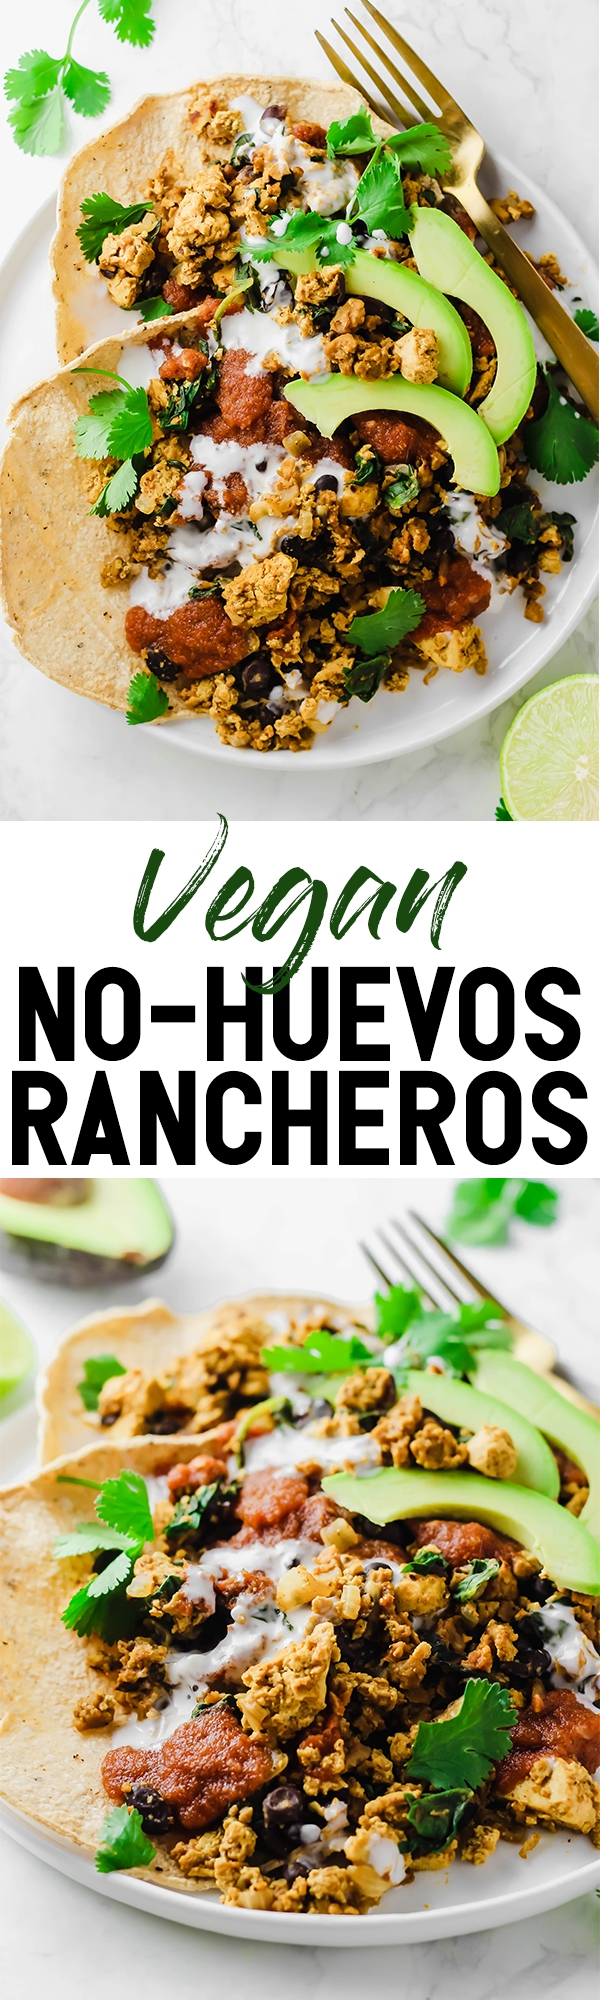 This protein-packed Vegan No-Huevos Rancheros dish is the perfect savory meal to serve for brunch, lunch, or dinner! Top with zesty ranchero sauce and tangy dairy-free sour cream for the ultimate plate.